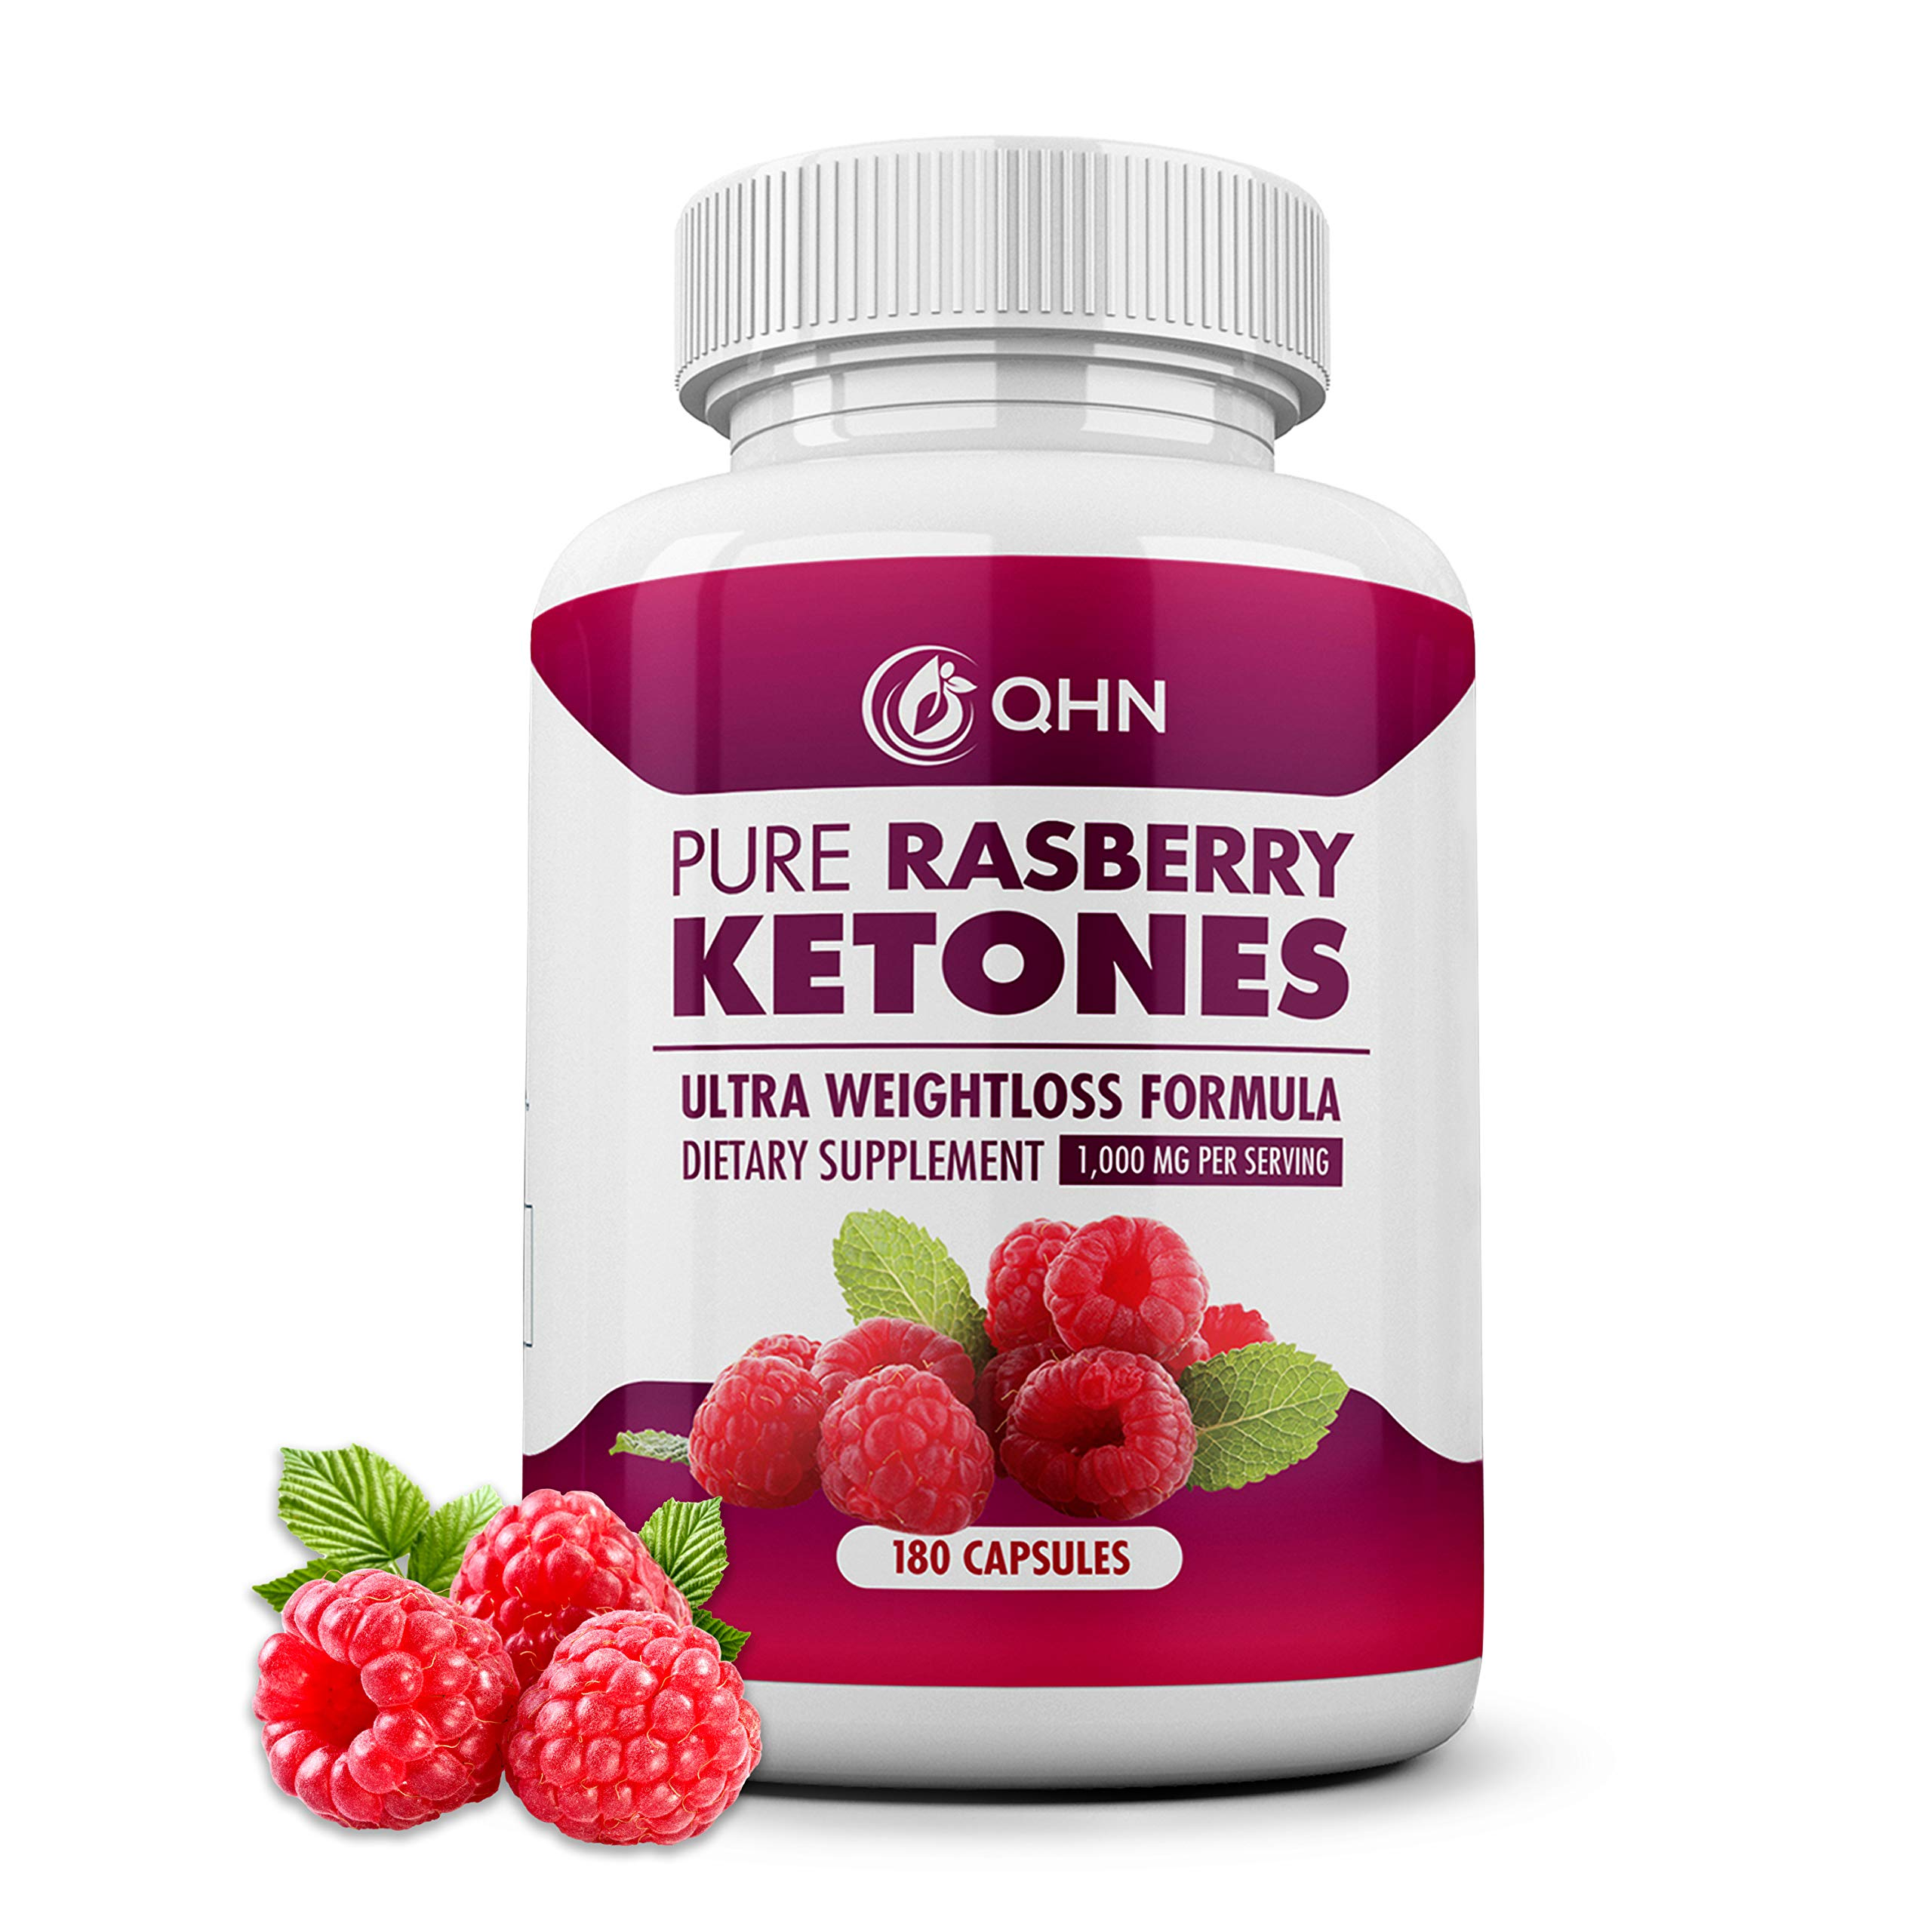 Pure 100% Raspberry Ketones Max 1000mg Per Serving - 3 Month Supply - Powerful Weight Loss Supplement - Provides Energy Boost for Weight Loss - 180 Capsules by Fresh Healthcare by Quantum Health Nutrition